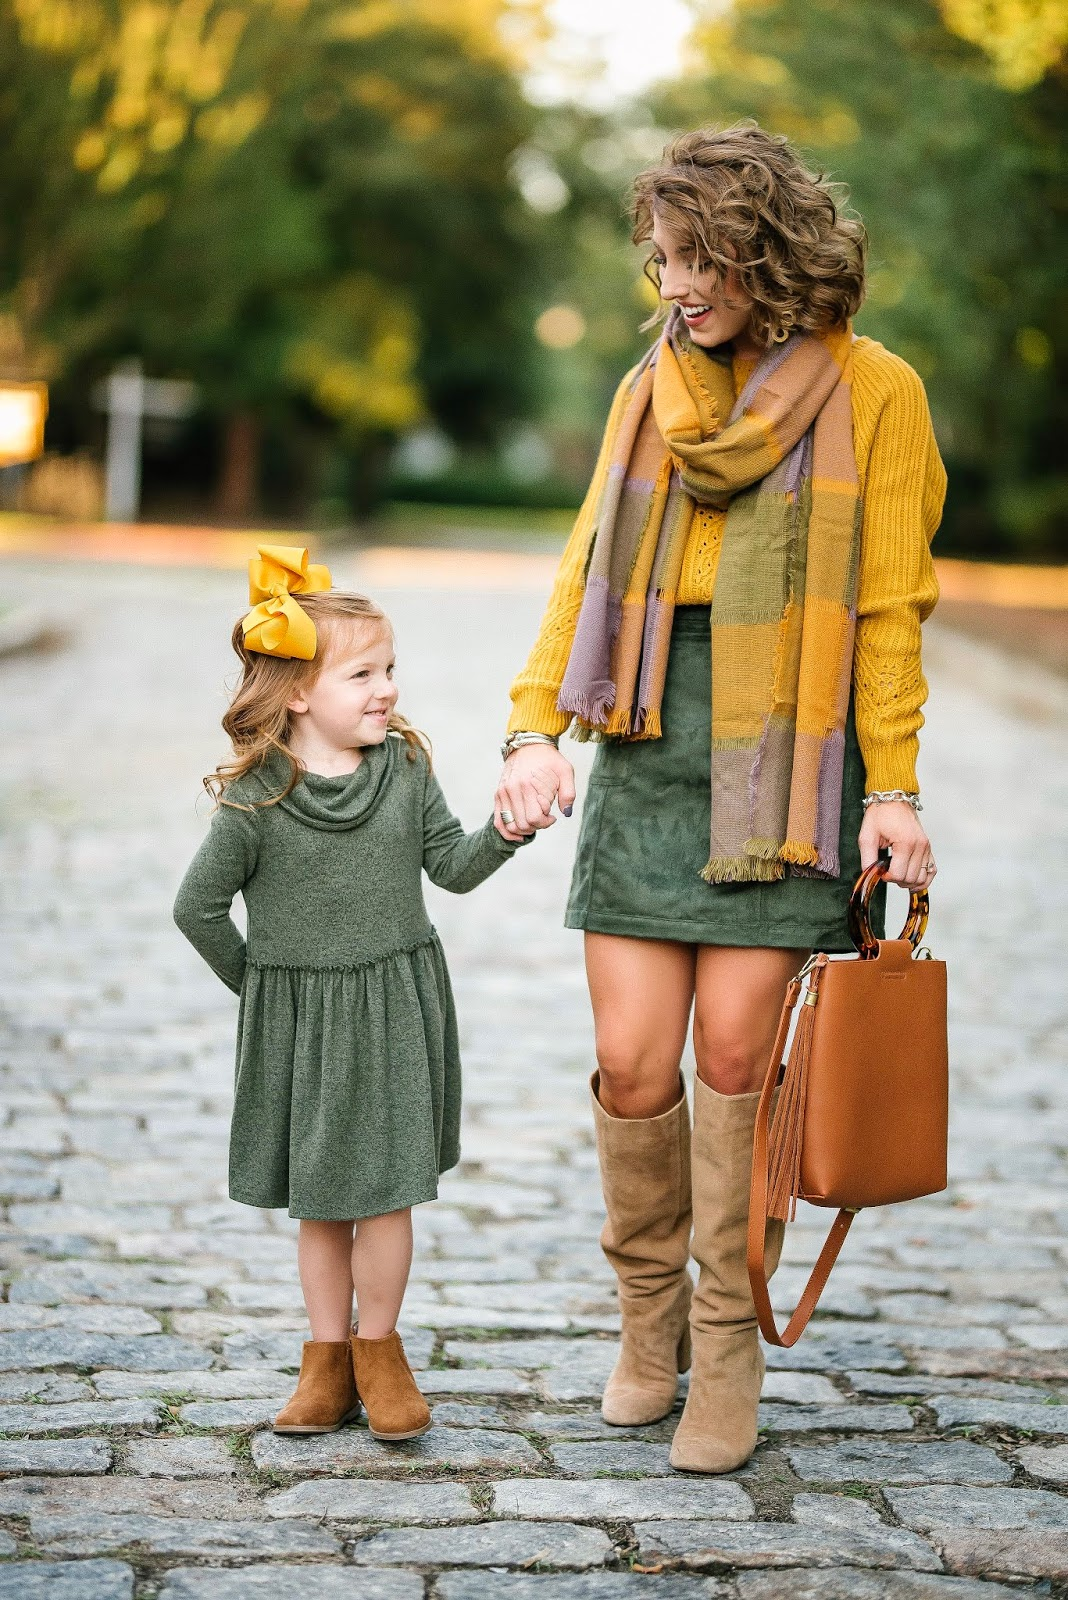 Mommy & Me in Mustard Yellow & Olive Green for Fall - Something Delightful Blog